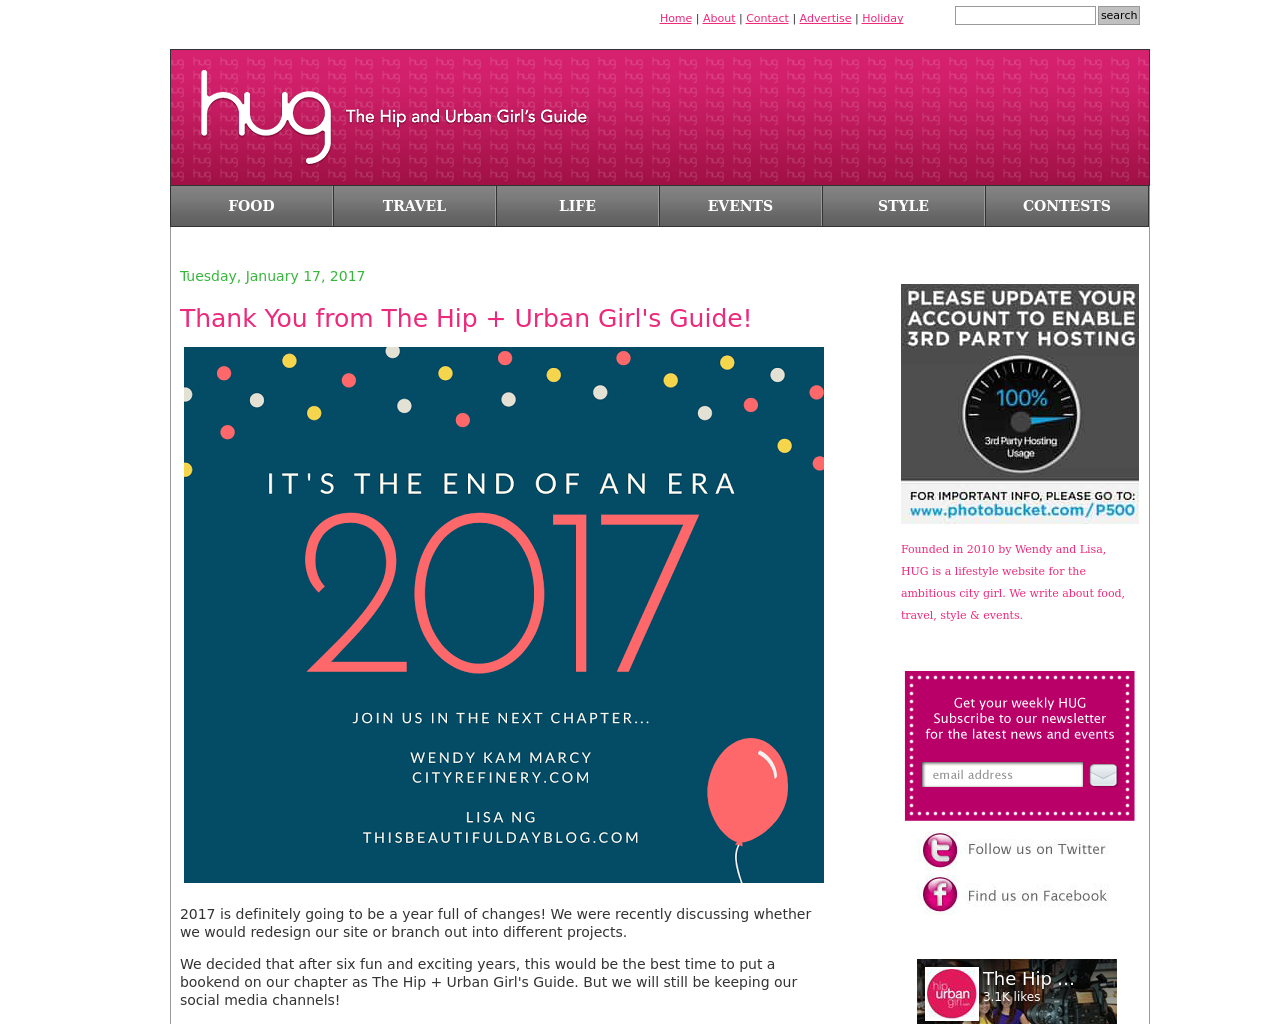 HUG-The-Hip--and-Urban-Girl's-Guide-Advertising-Reviews-Pricing